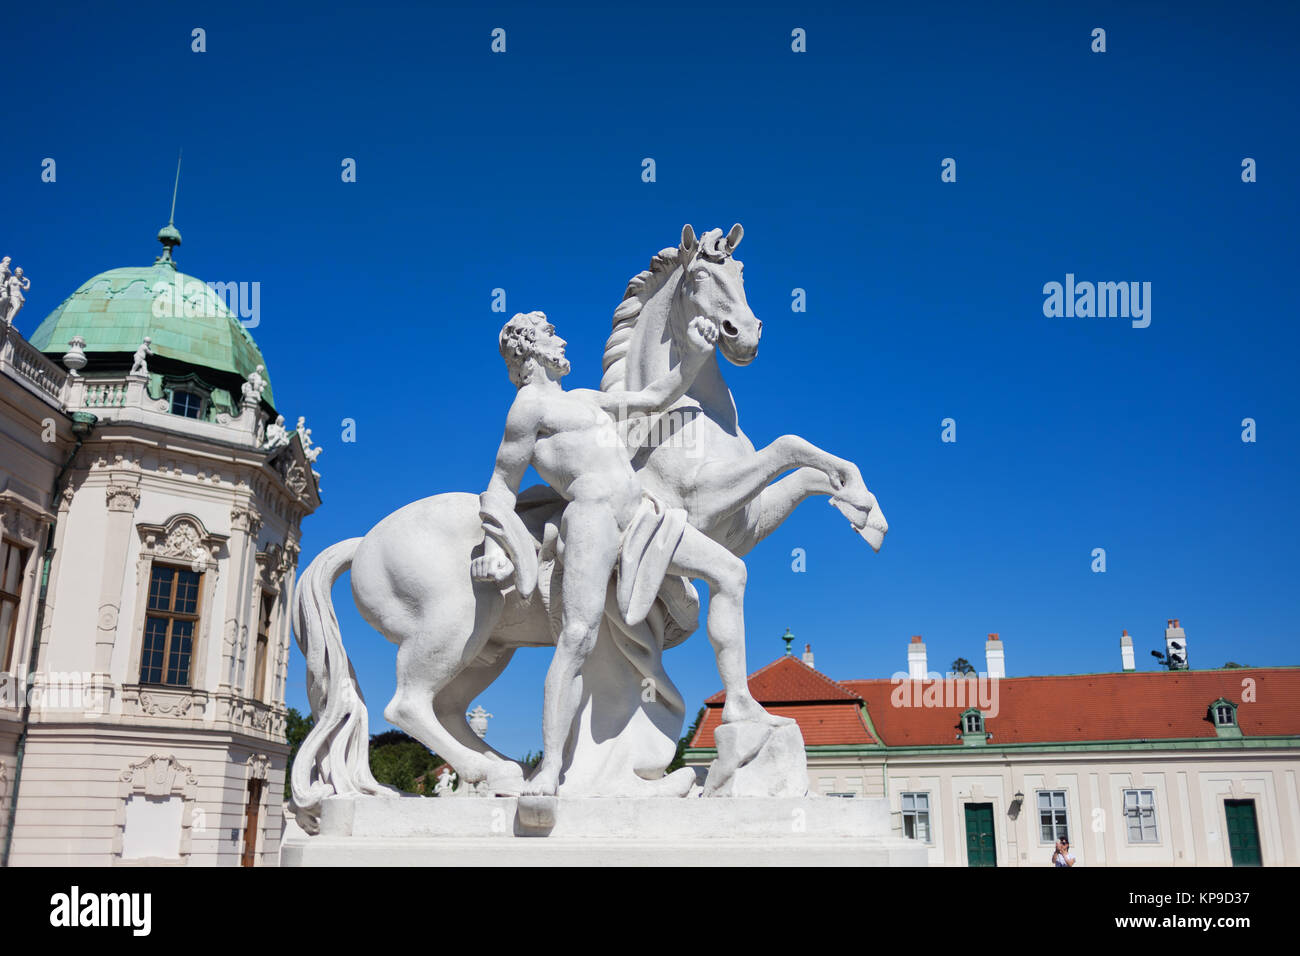 Man with a horse statue in front of Upper Belvedere in Vienna, Austria - Stock Image